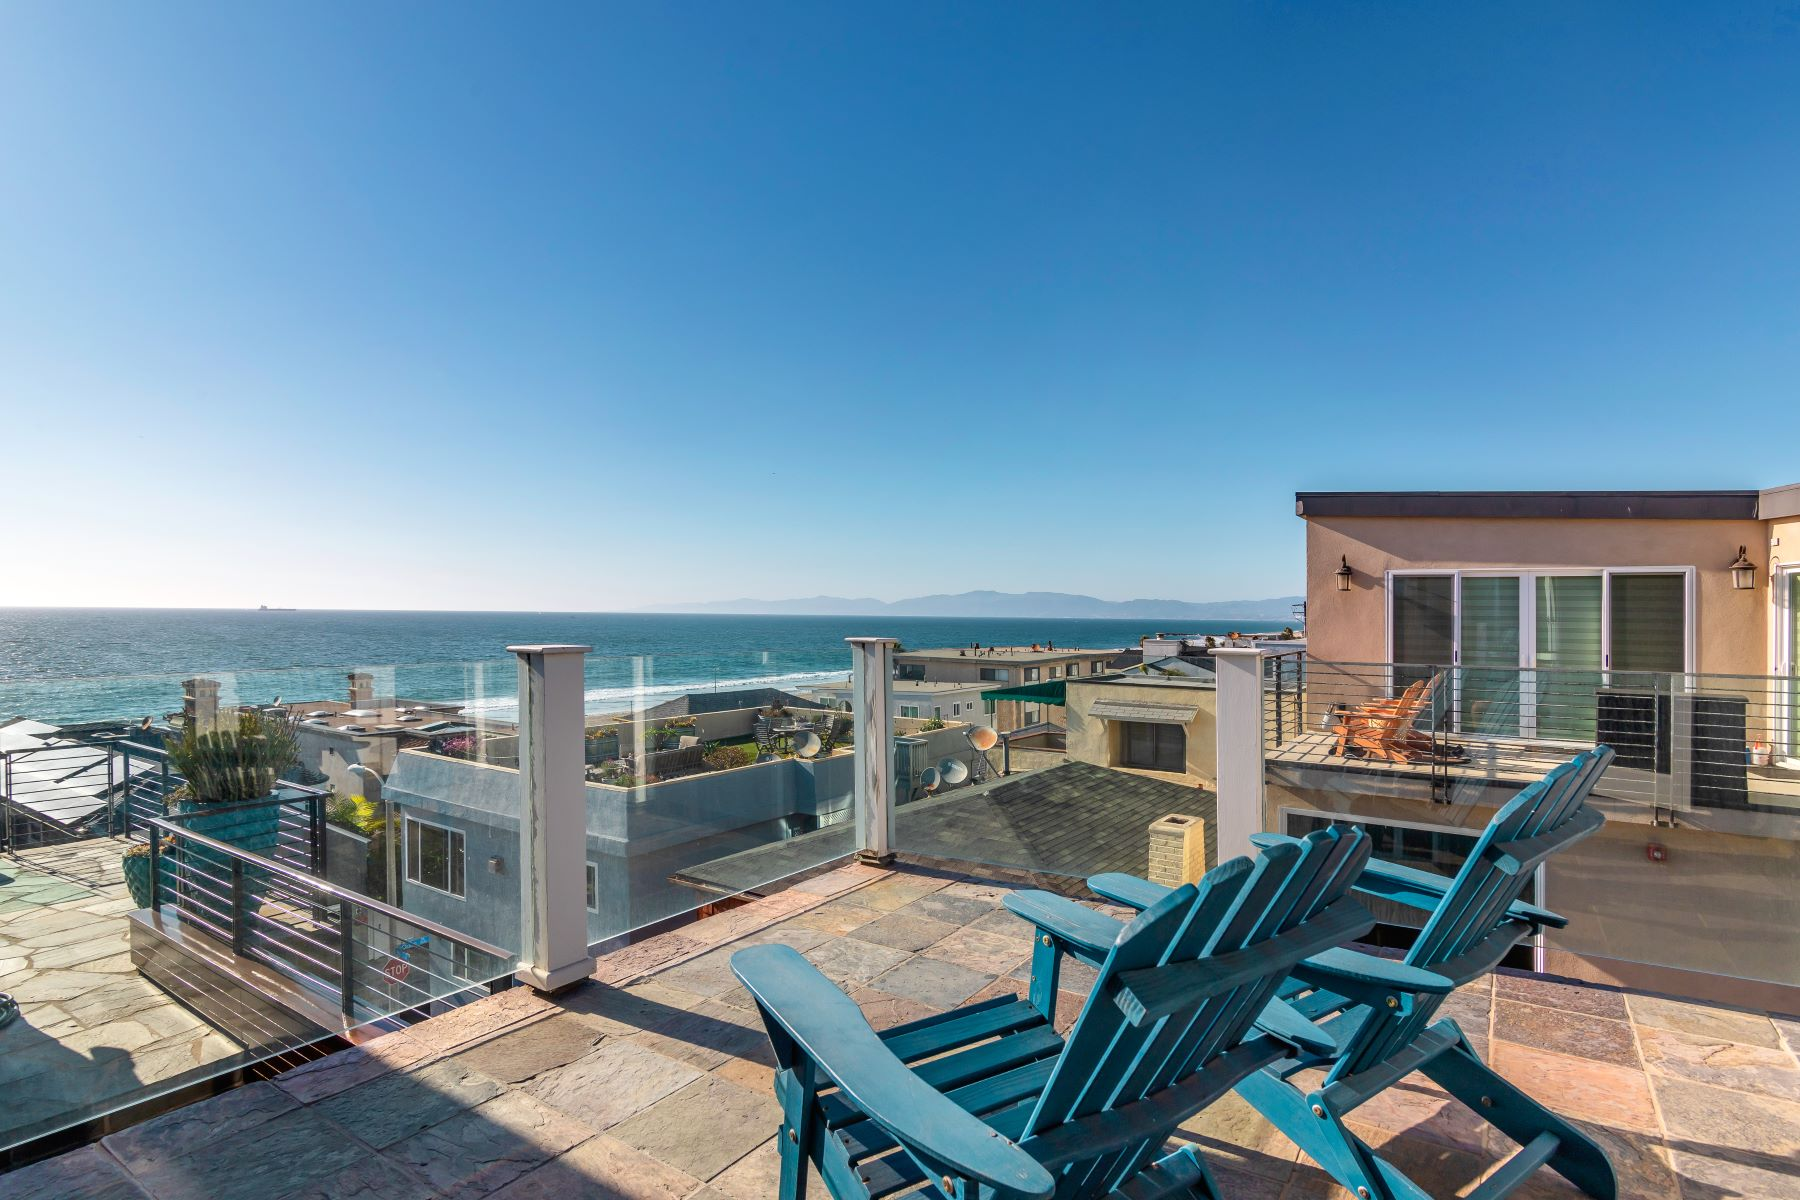 Single Family Homes for Sale at 121 35th Street, Manhattan Beach, CA 90266 121 35th Street Manhattan Beach, California 90266 United States